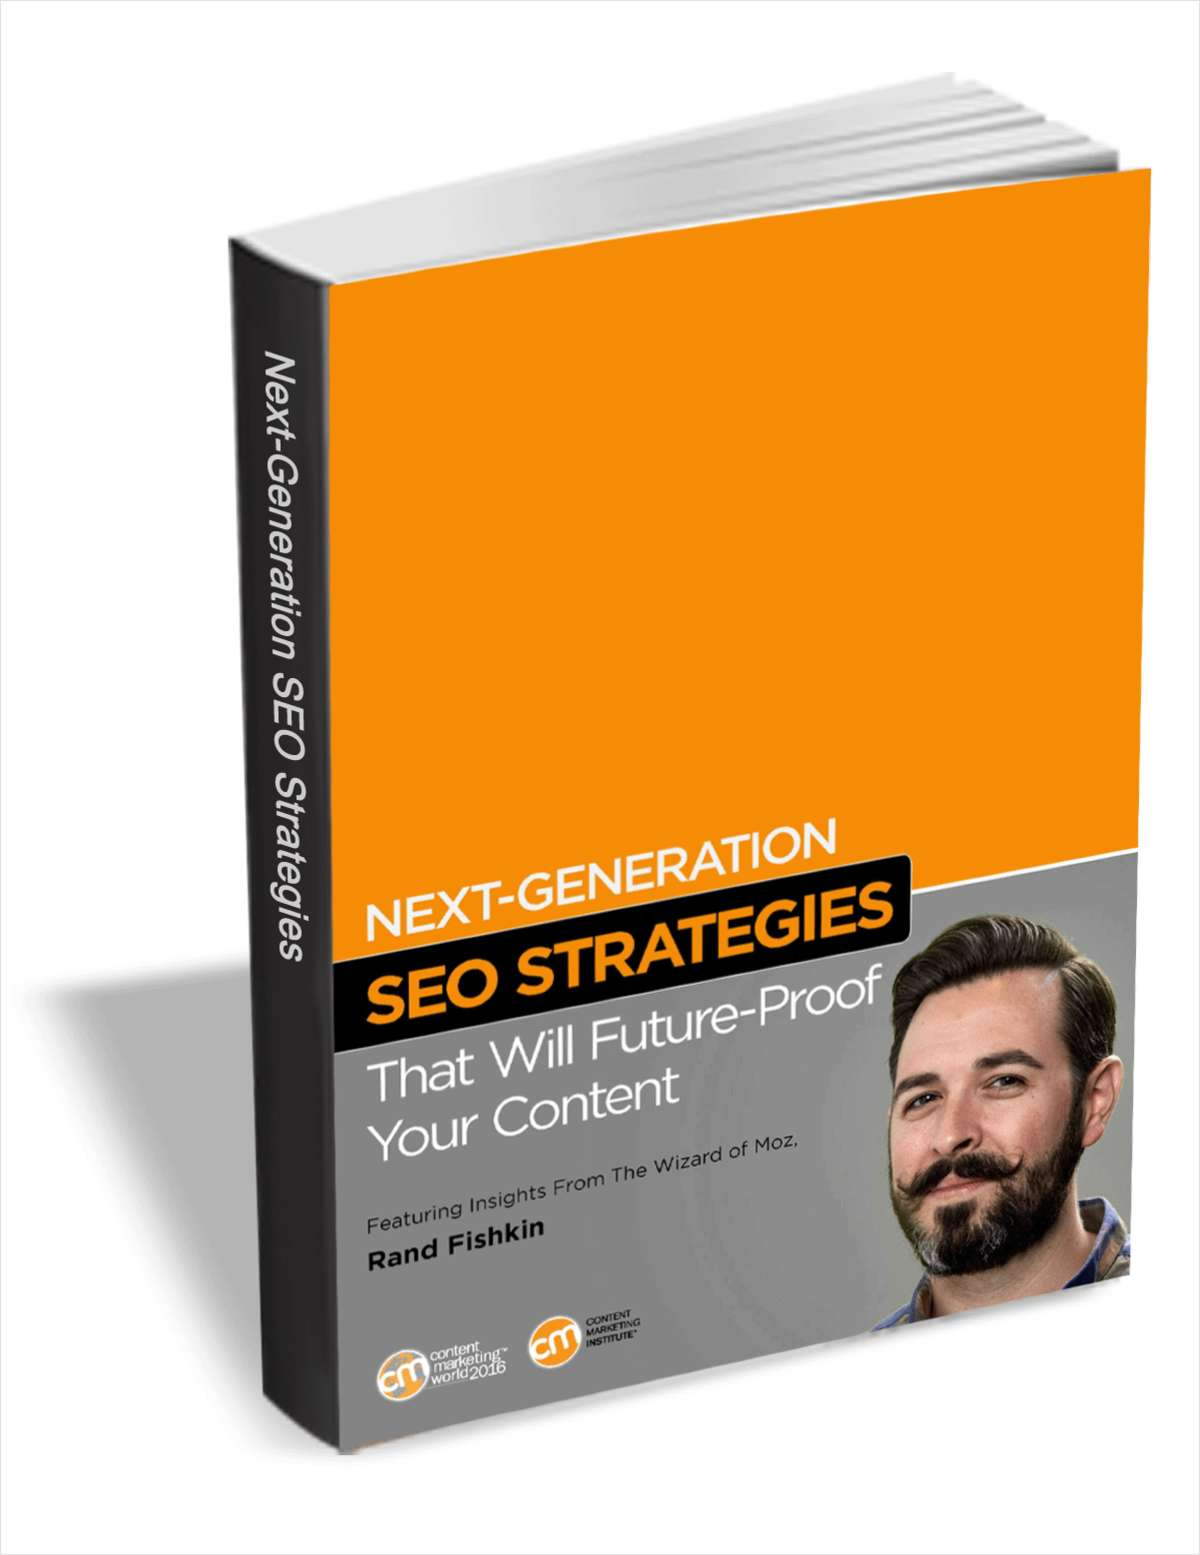 Next-Generation SEO Strategies That Will Future-Proof Your Content